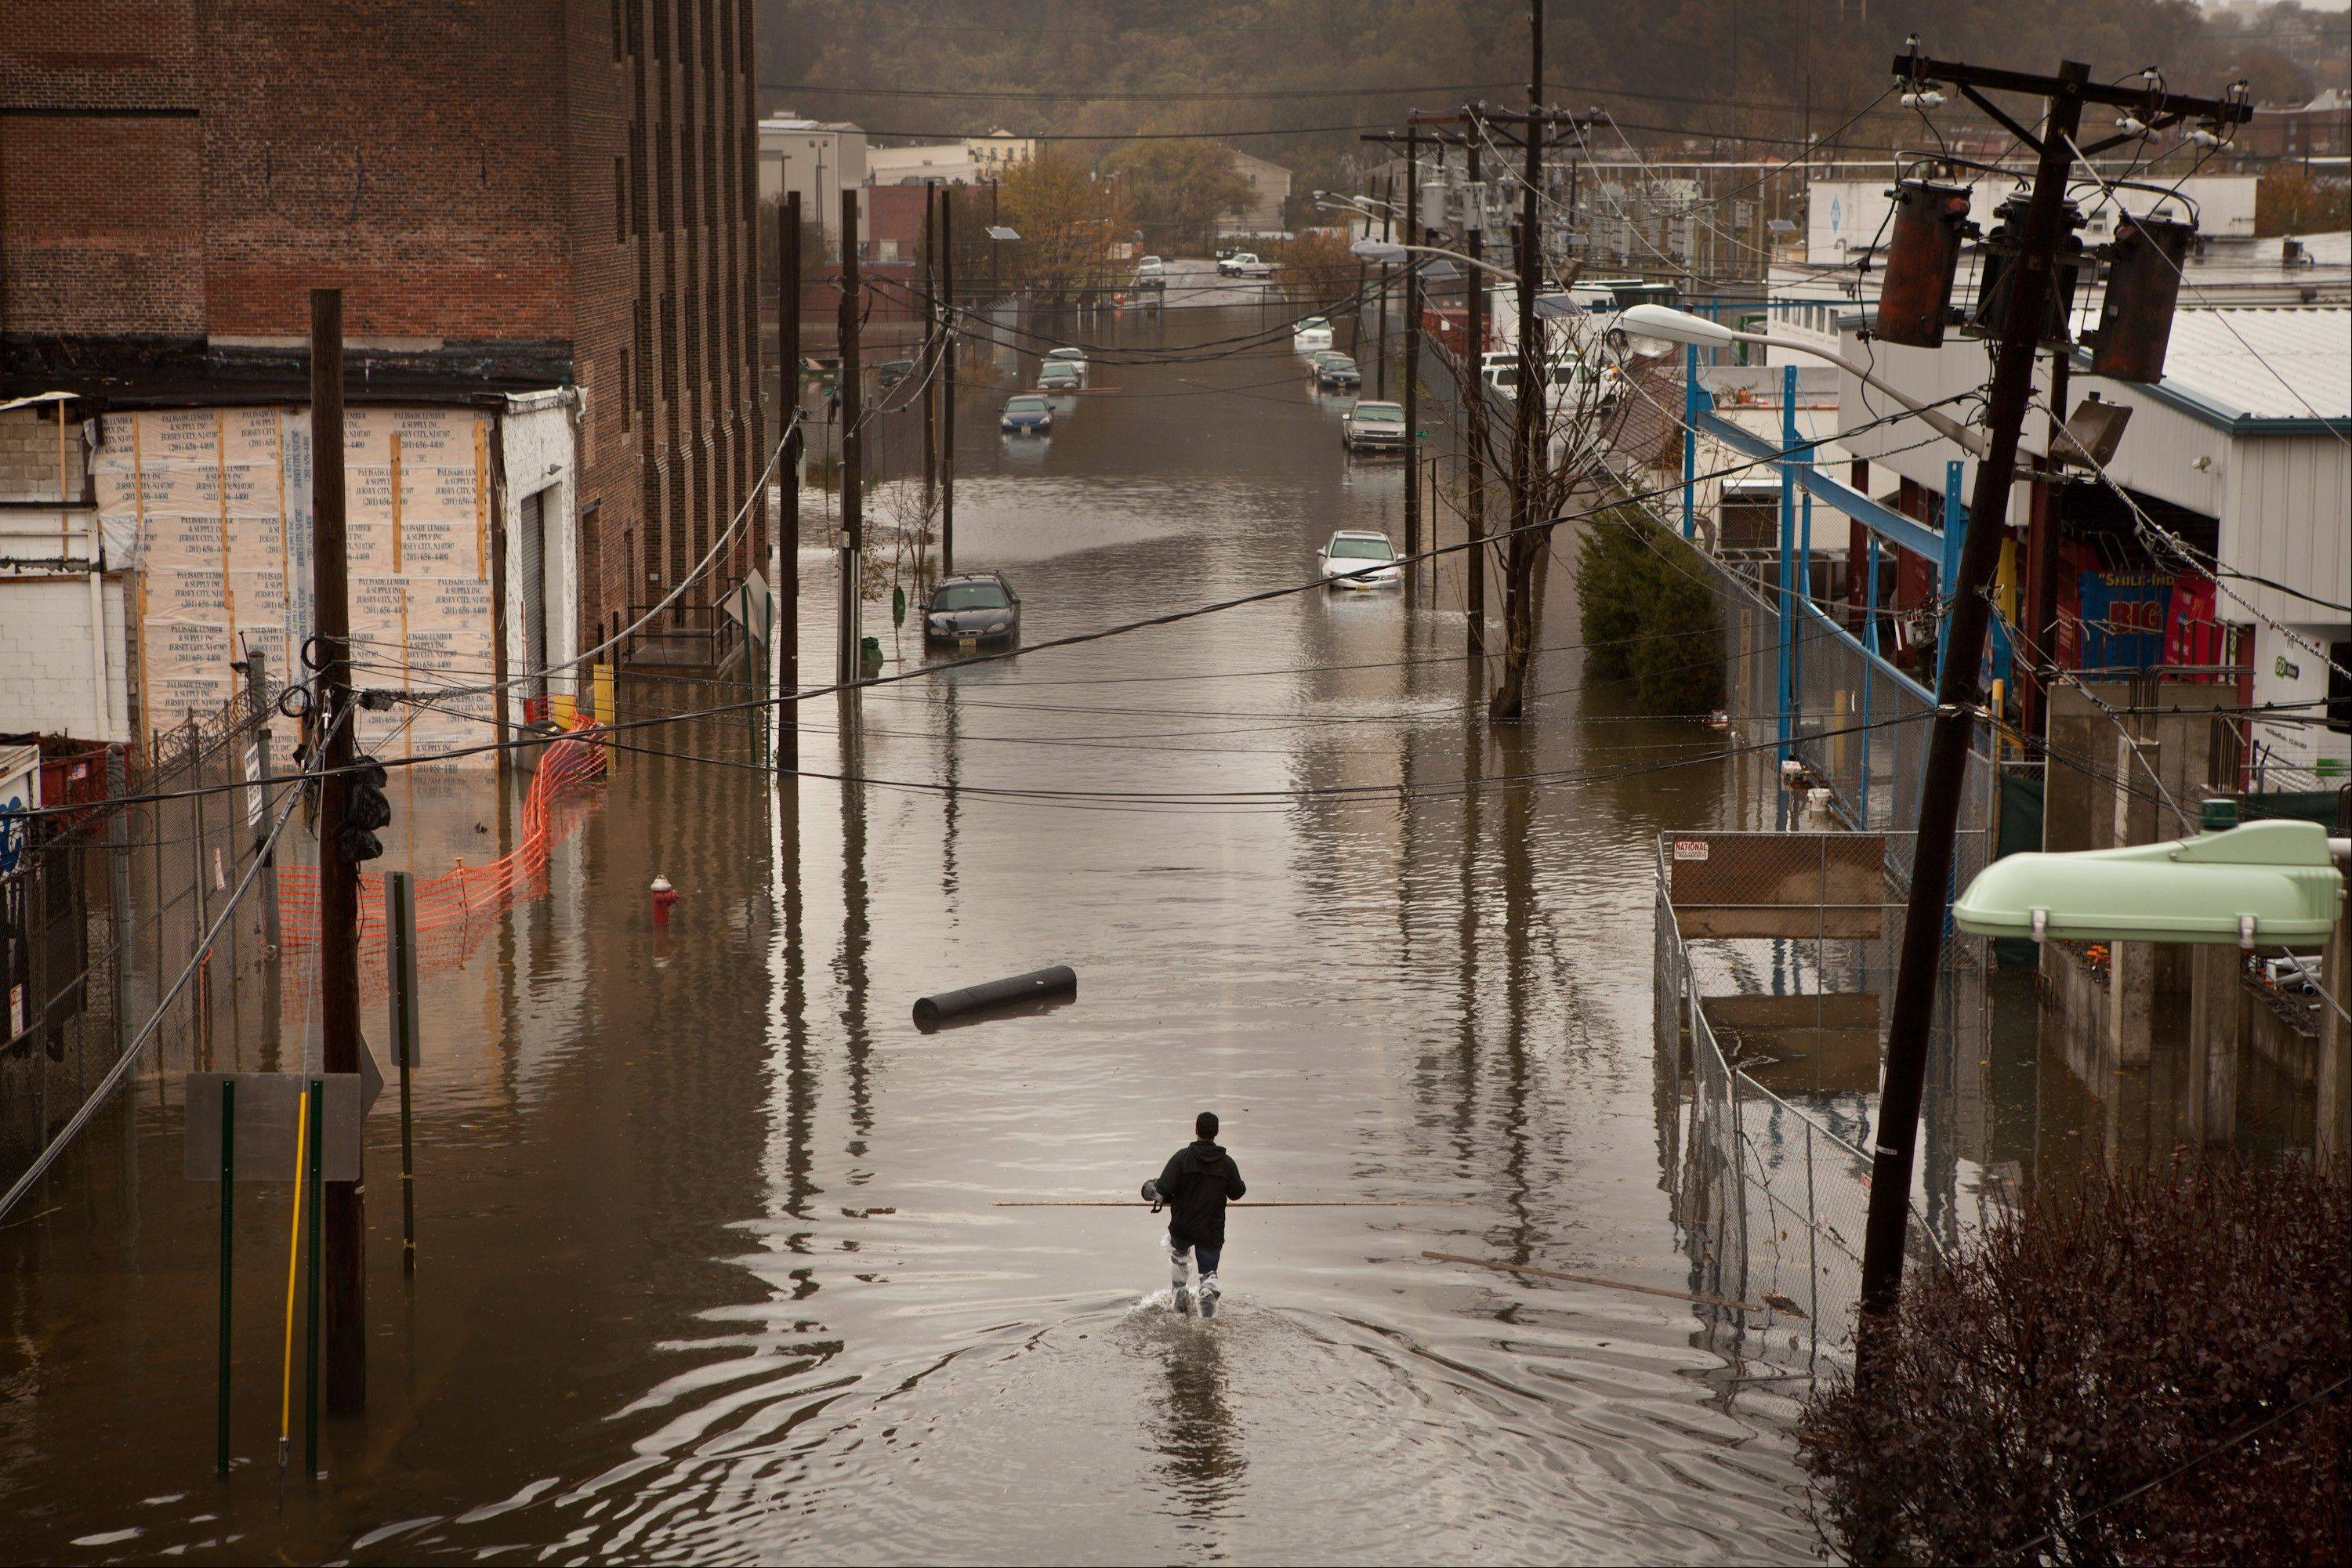 A man walks through flood waters in Hoboken, New Jersey, U.S., on Tuesday, Oct. 30, 2012. The Atlantic storm Sandy left a landscape of devastation across much of New Jersey, tearing apart seaside resort towns, ripping houses from foundations and littering the turnpike with rail cars and debris.